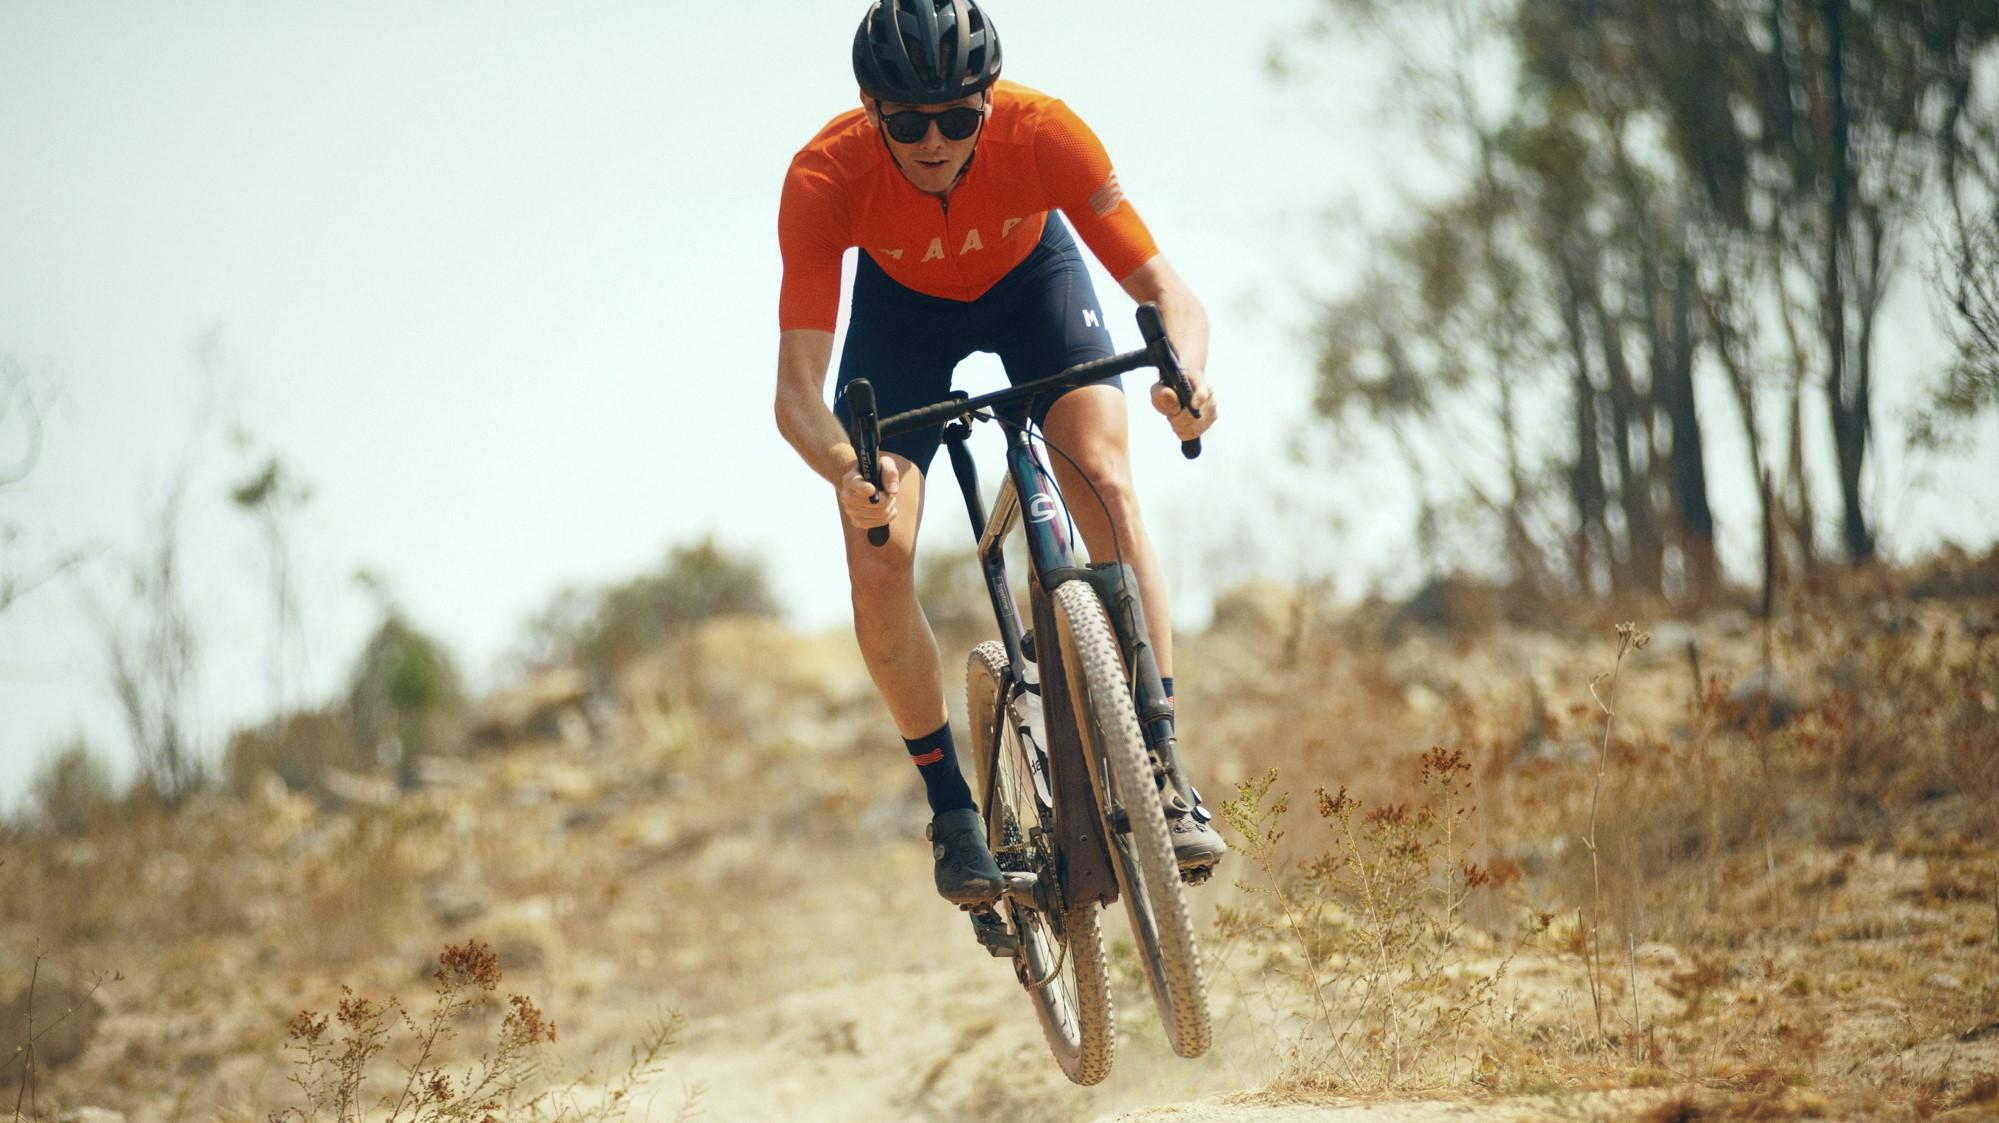 Cannondale's Topstone Lefty is a gravel bike with air-suspension